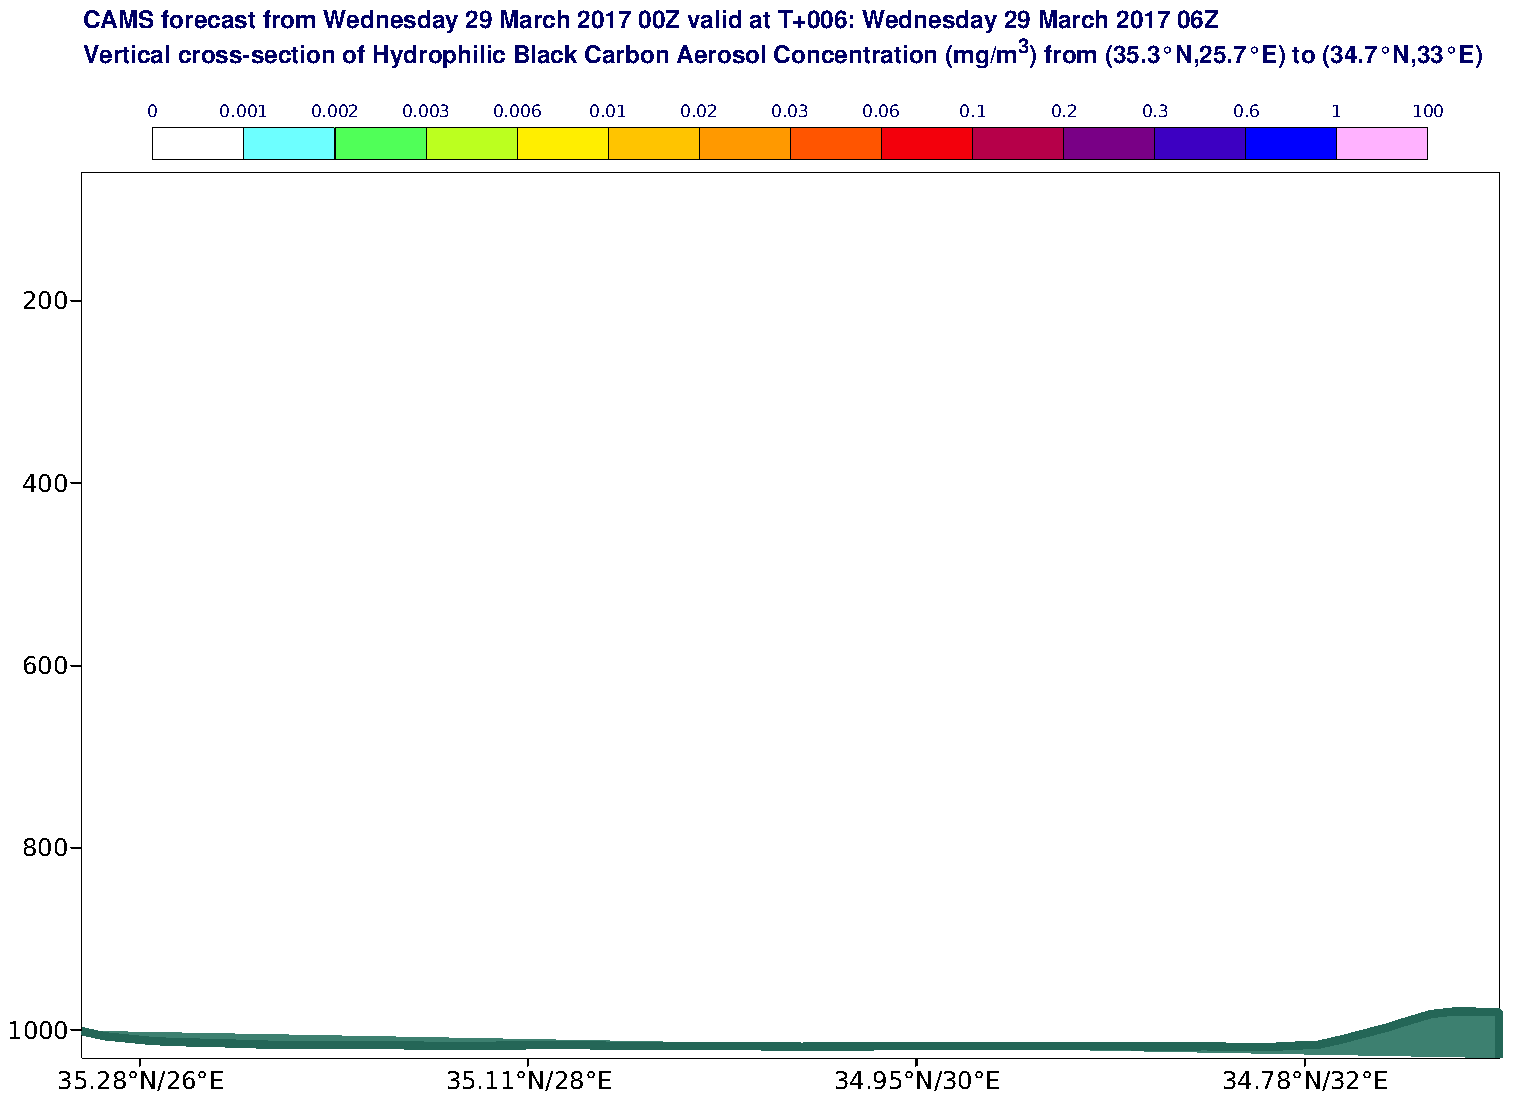 Vertical cross-section of Hydrophilic Black Carbon Aerosol Concentration (mg/m3) valid at T6 - 2017-03-29 06:00